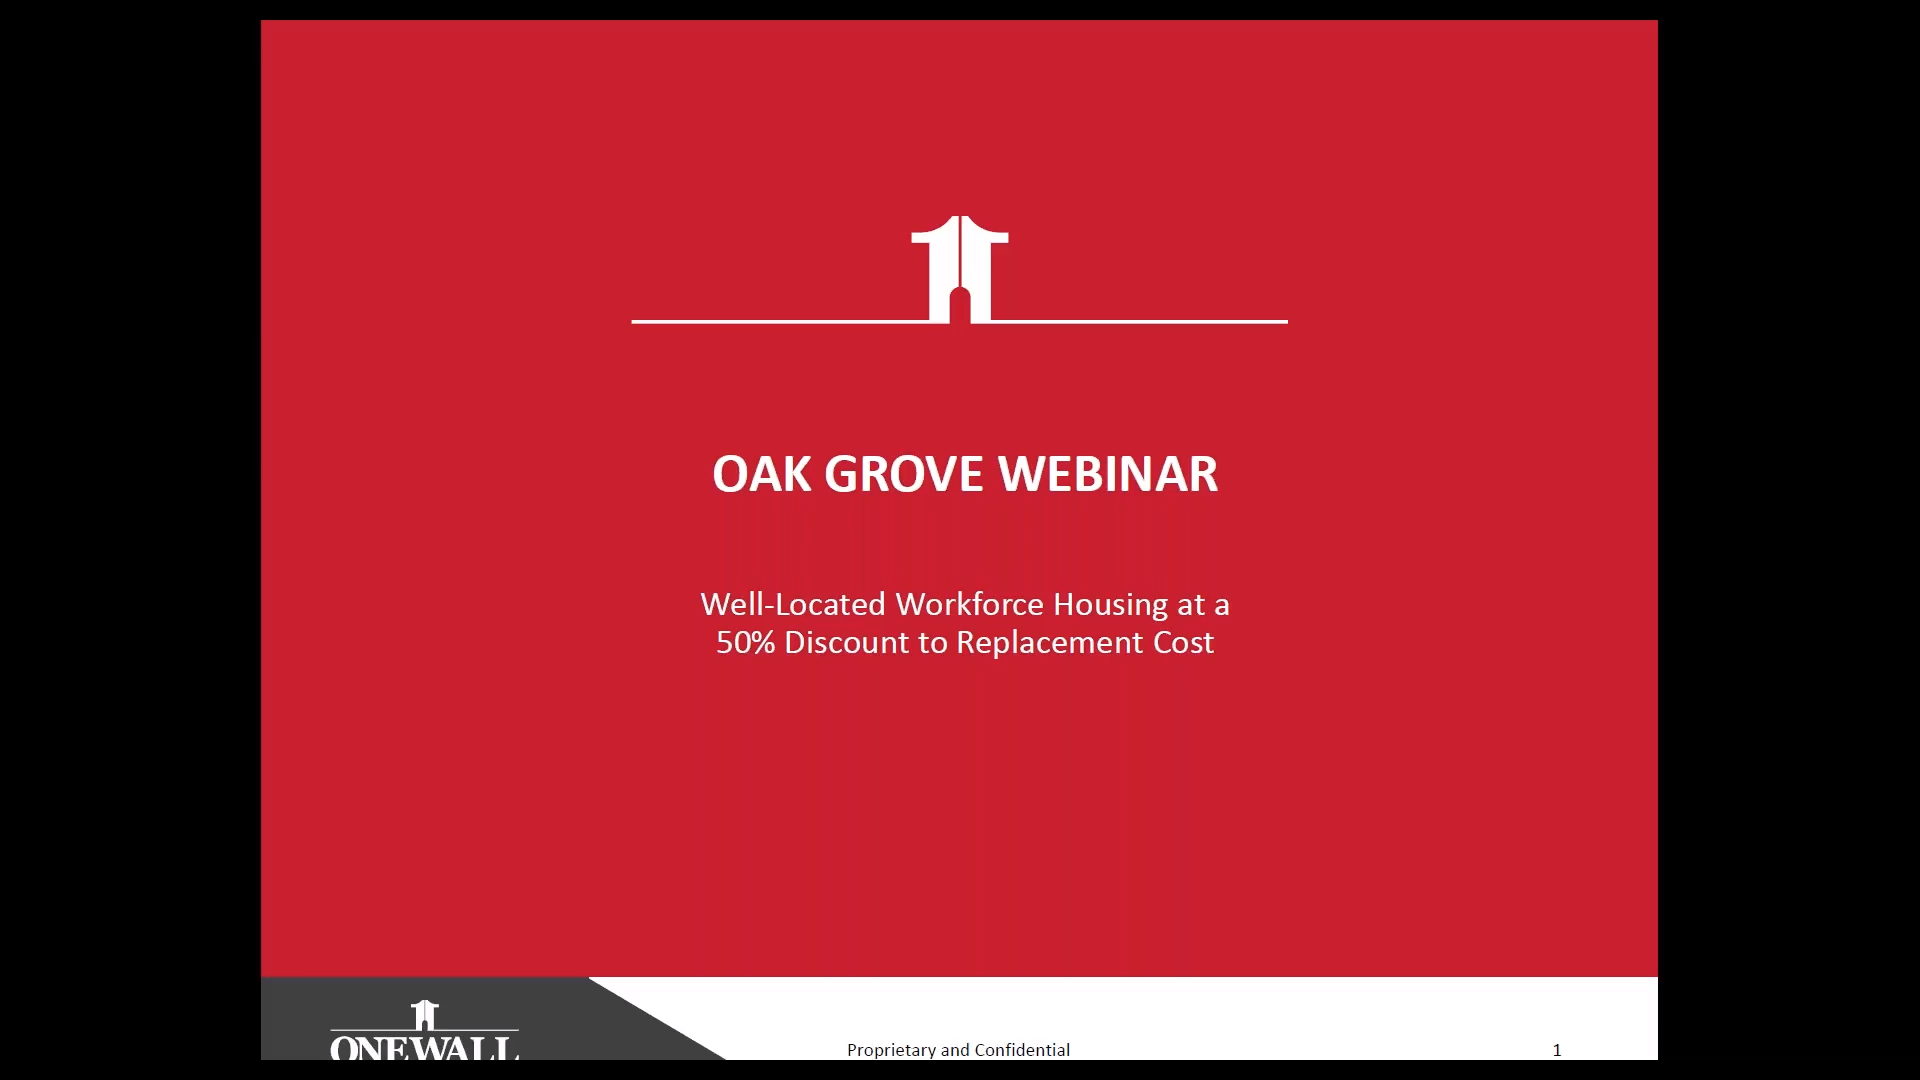 Investment Video - Oak Grove